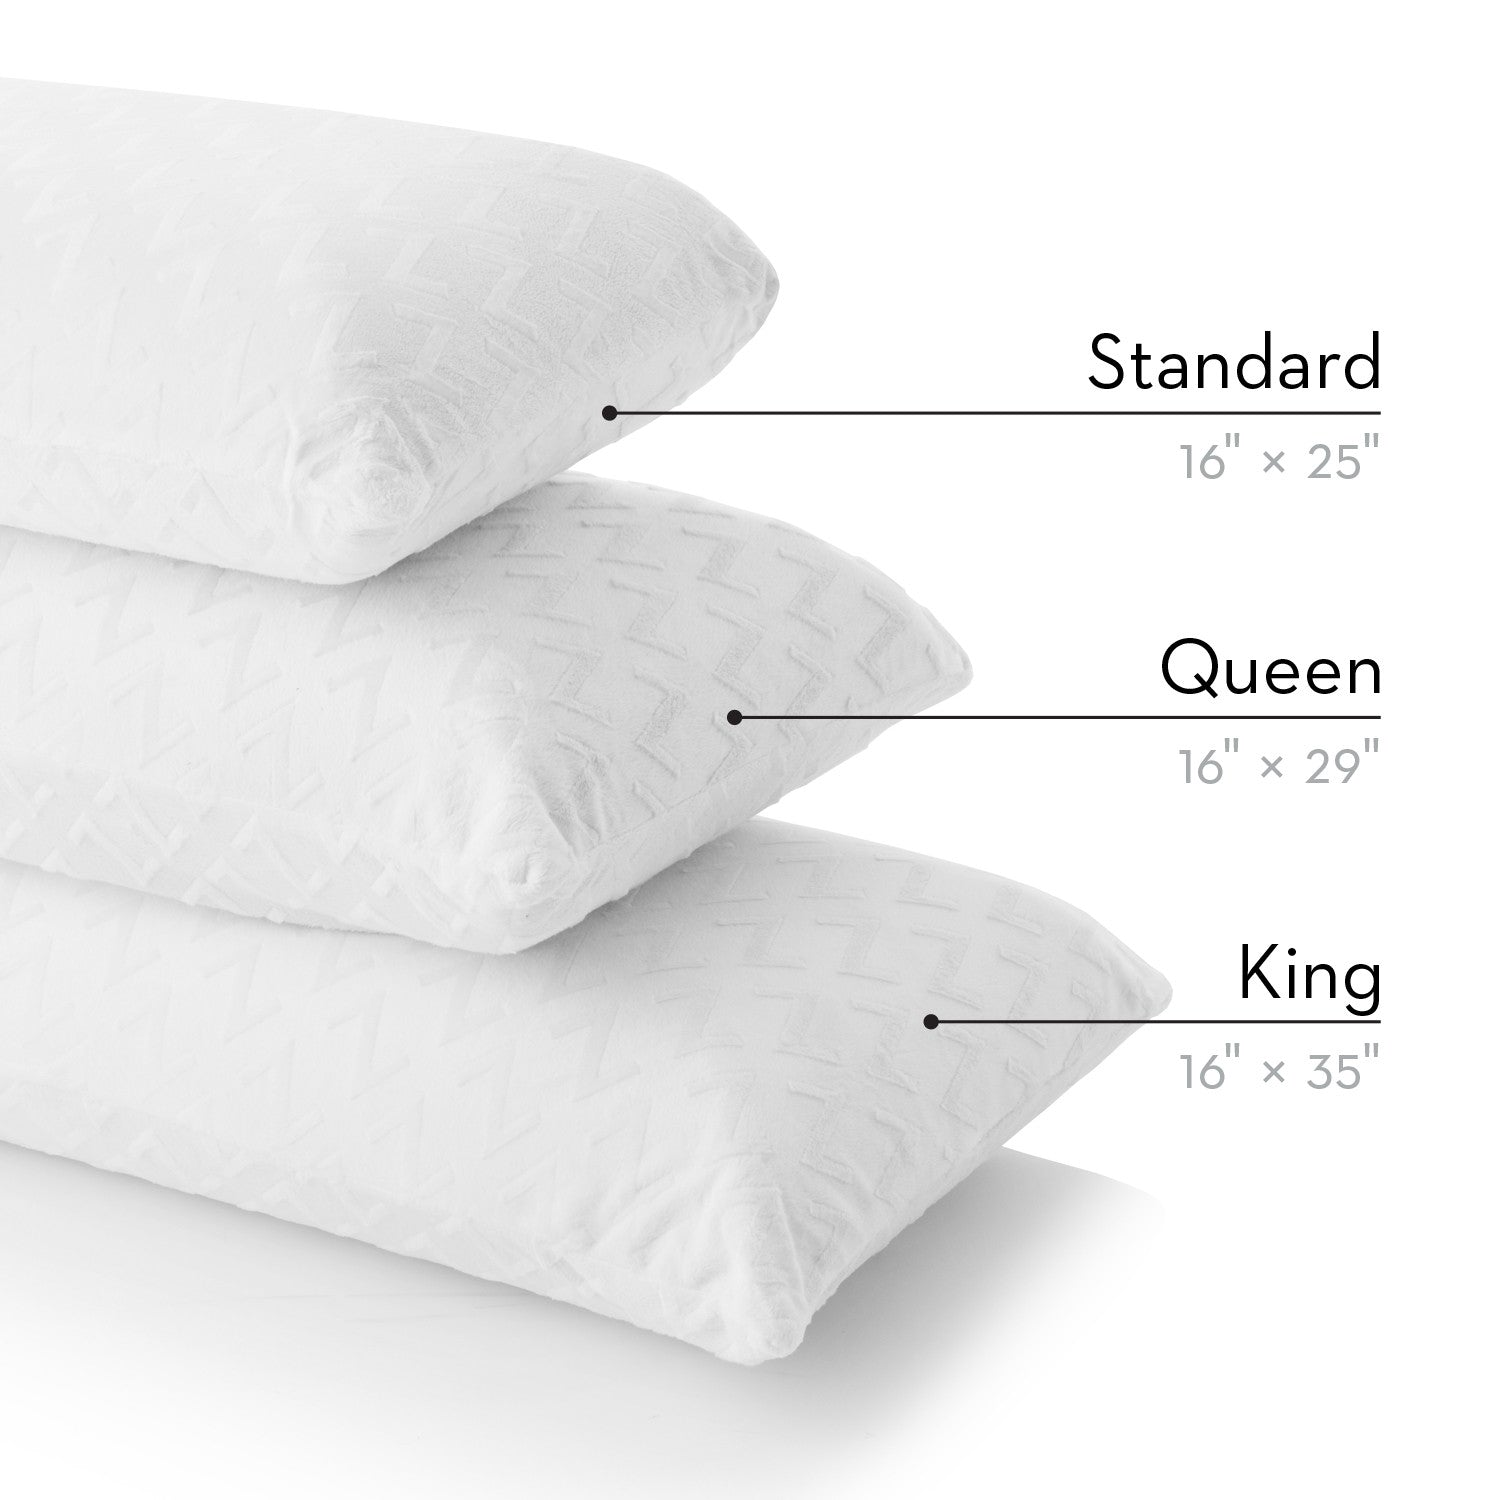 firm talalay organic natural covering amazon with com dl home kitchen cotton all queen pillow latex dp outer